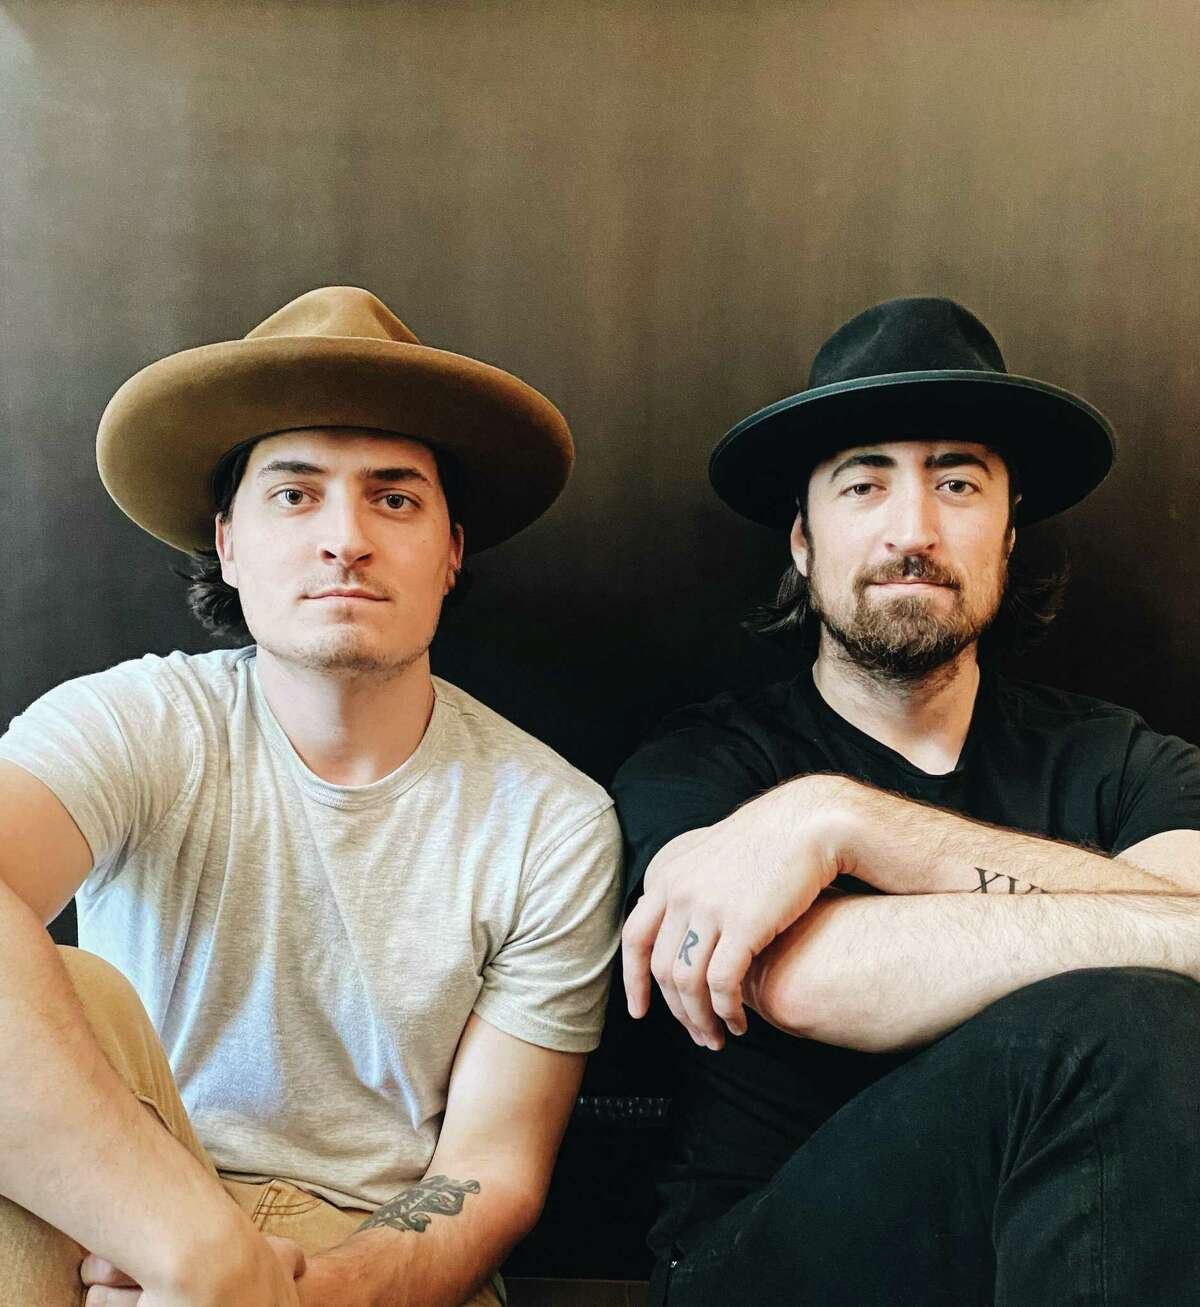 The Talbott Brothers are releasing acoustic singles during the coronavirus pandemic.